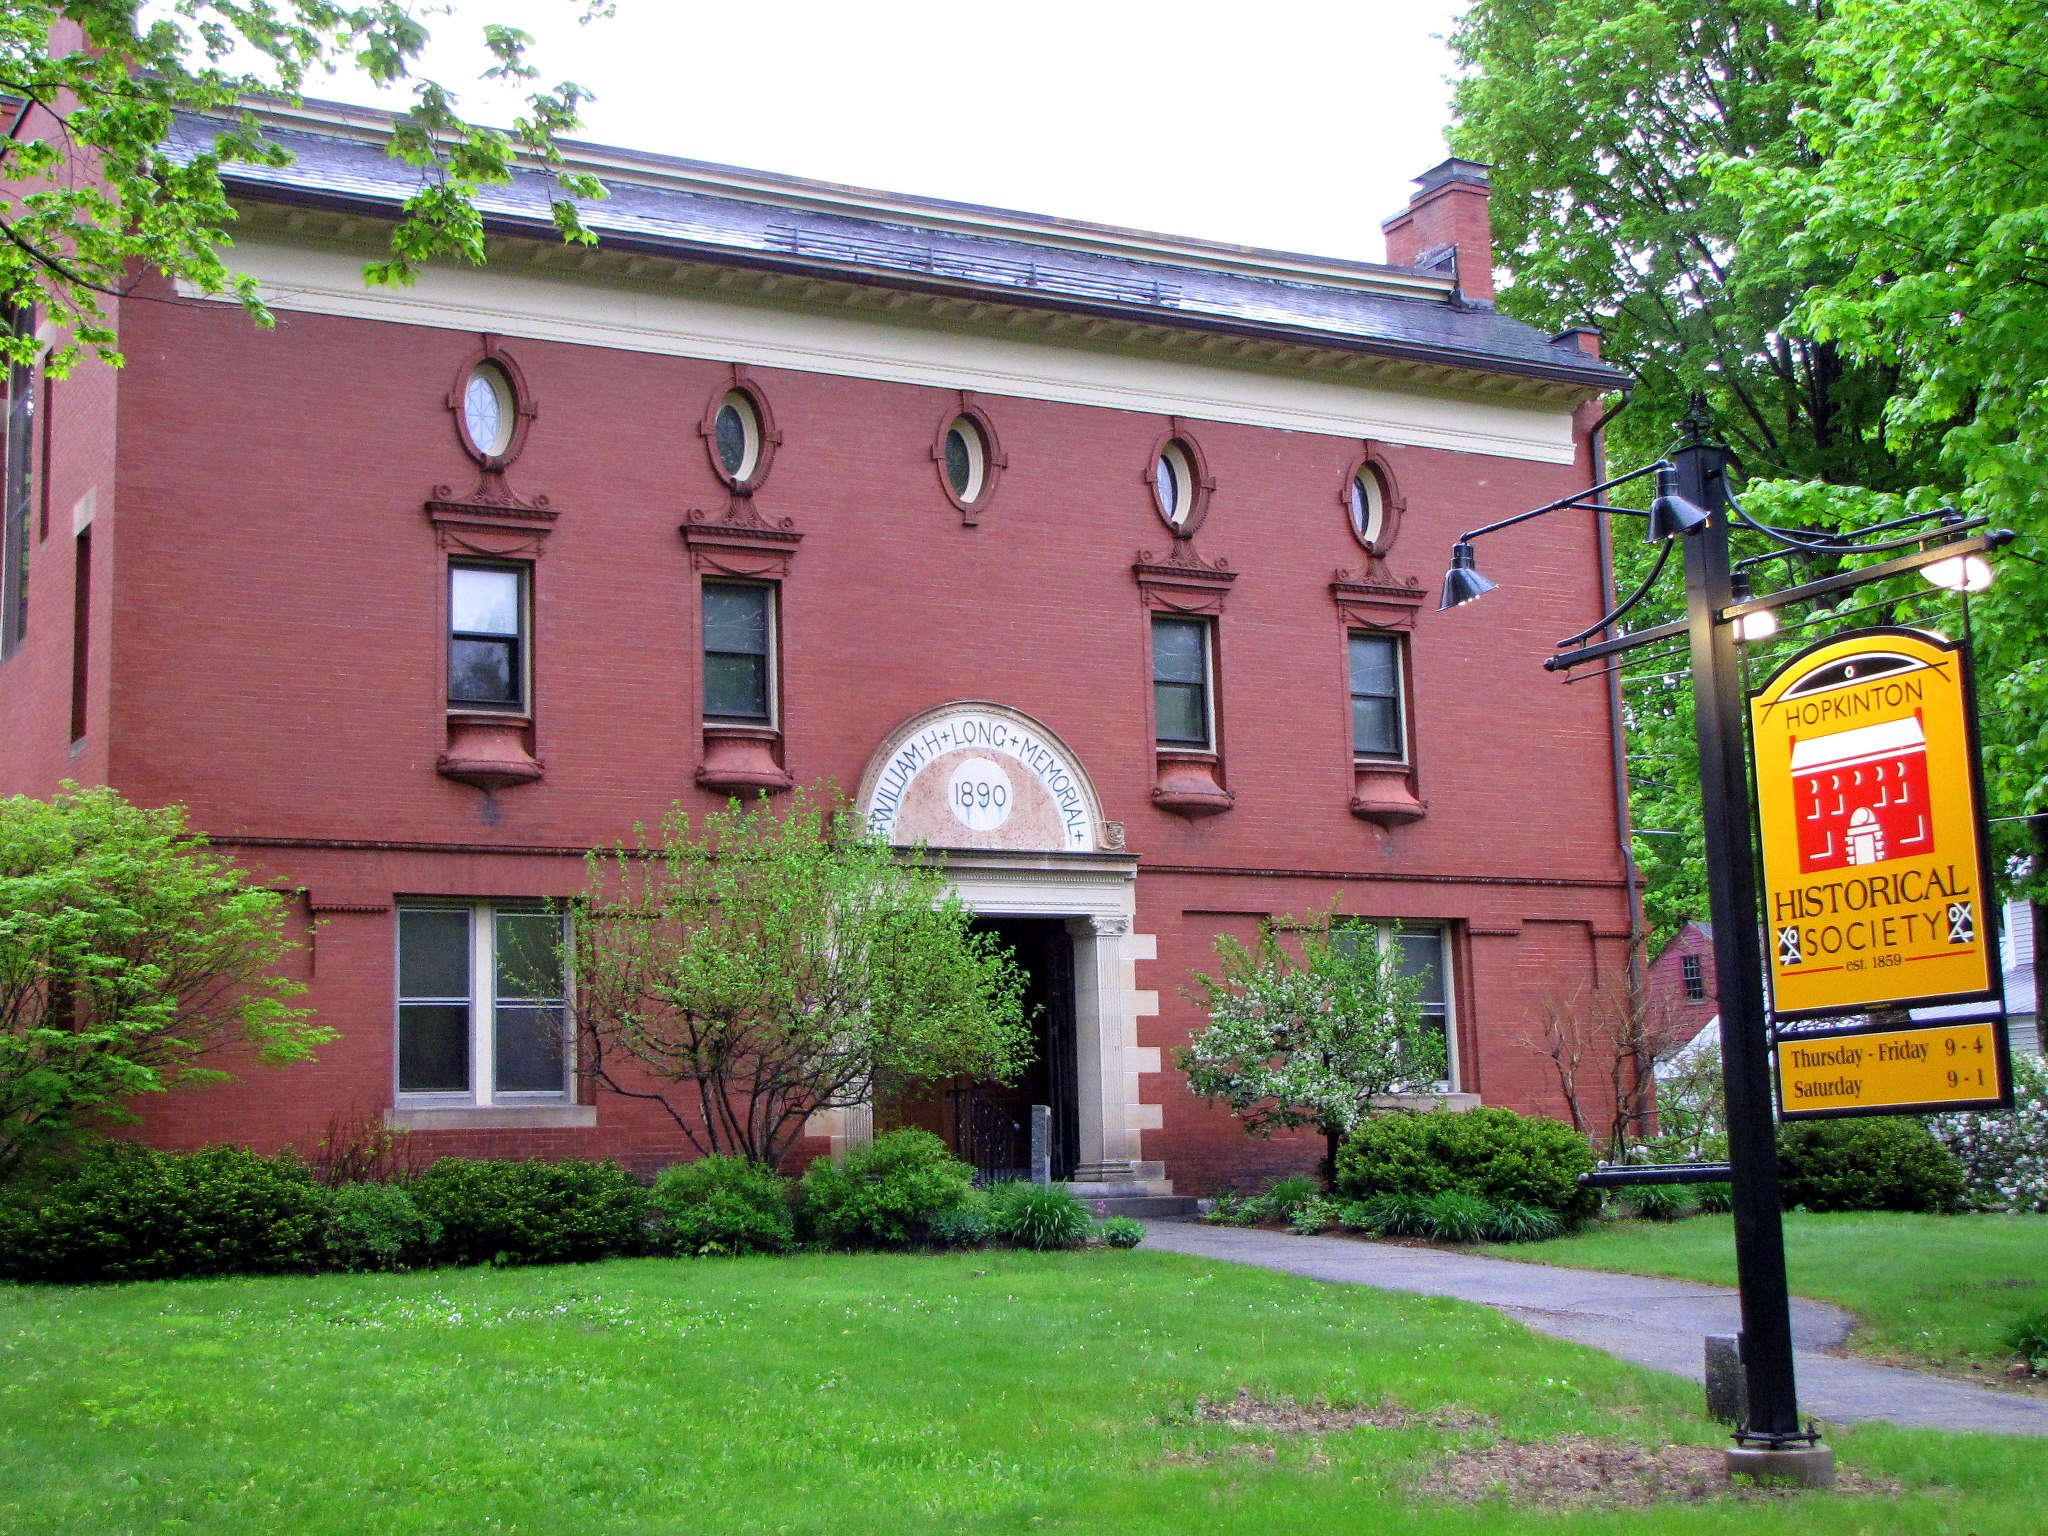 The Long Memorial Building, built in 1890 for the Hopkinton Historical Society, was named to the National Register of Historic Places in 1977.